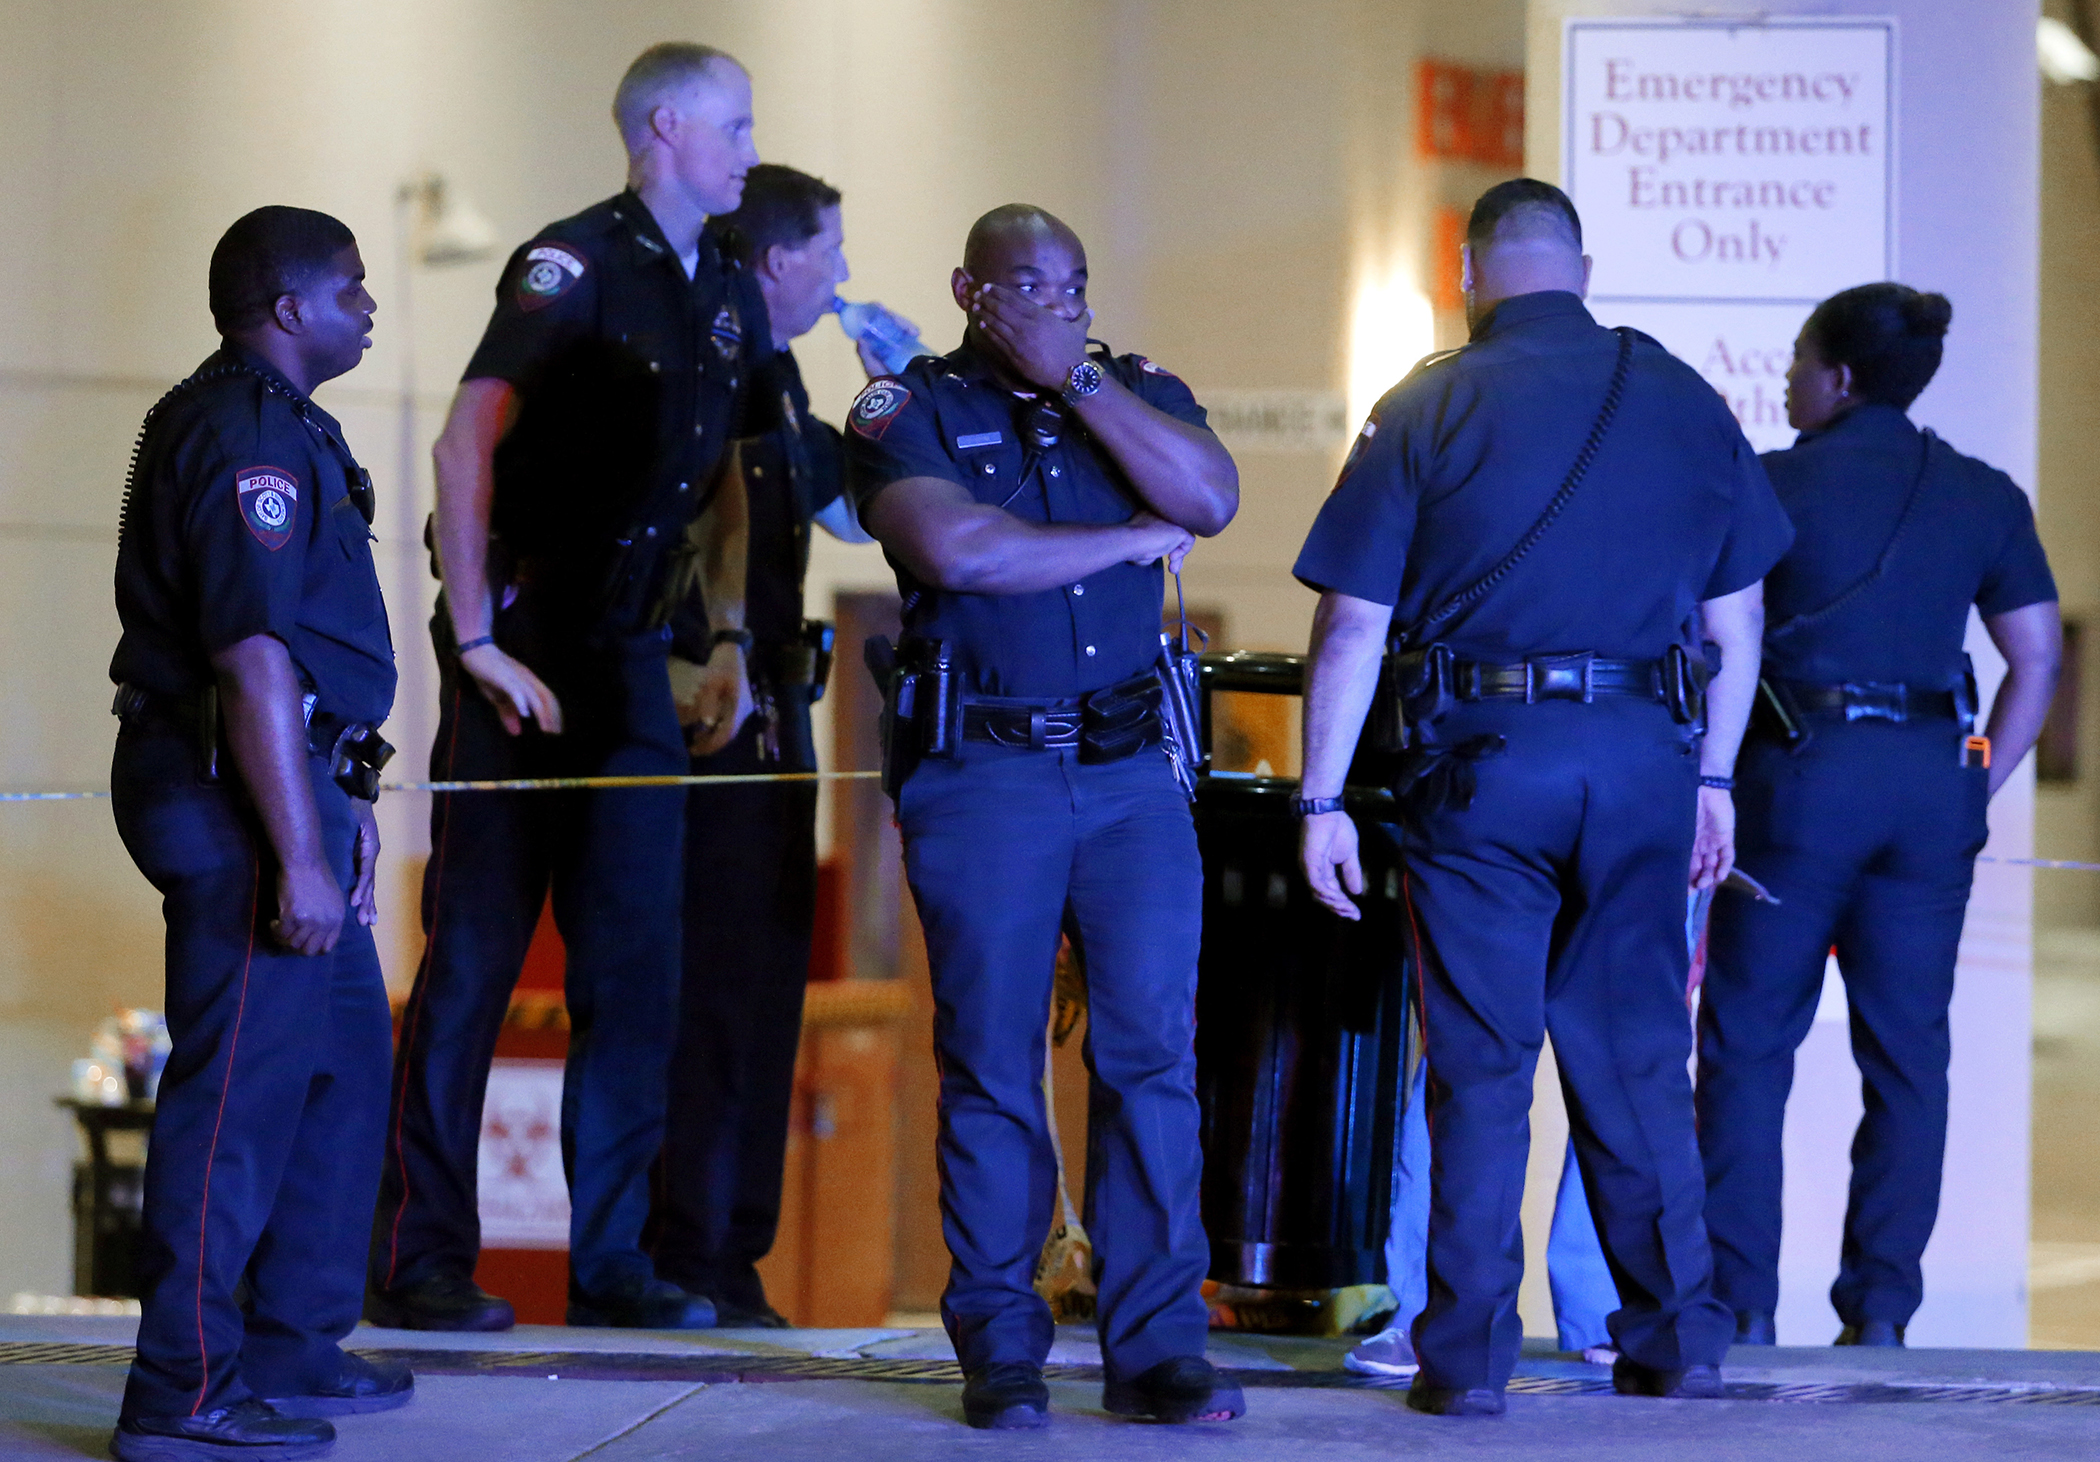 A Dallas police officer covers his face as he stands with others outside the emergency room at Baylor University Medical Center, Friday, July 8, 2016, in Dallas. Snipers opened fire on police officers in the heart of Dallas on Thursday night, killing some of the officers.